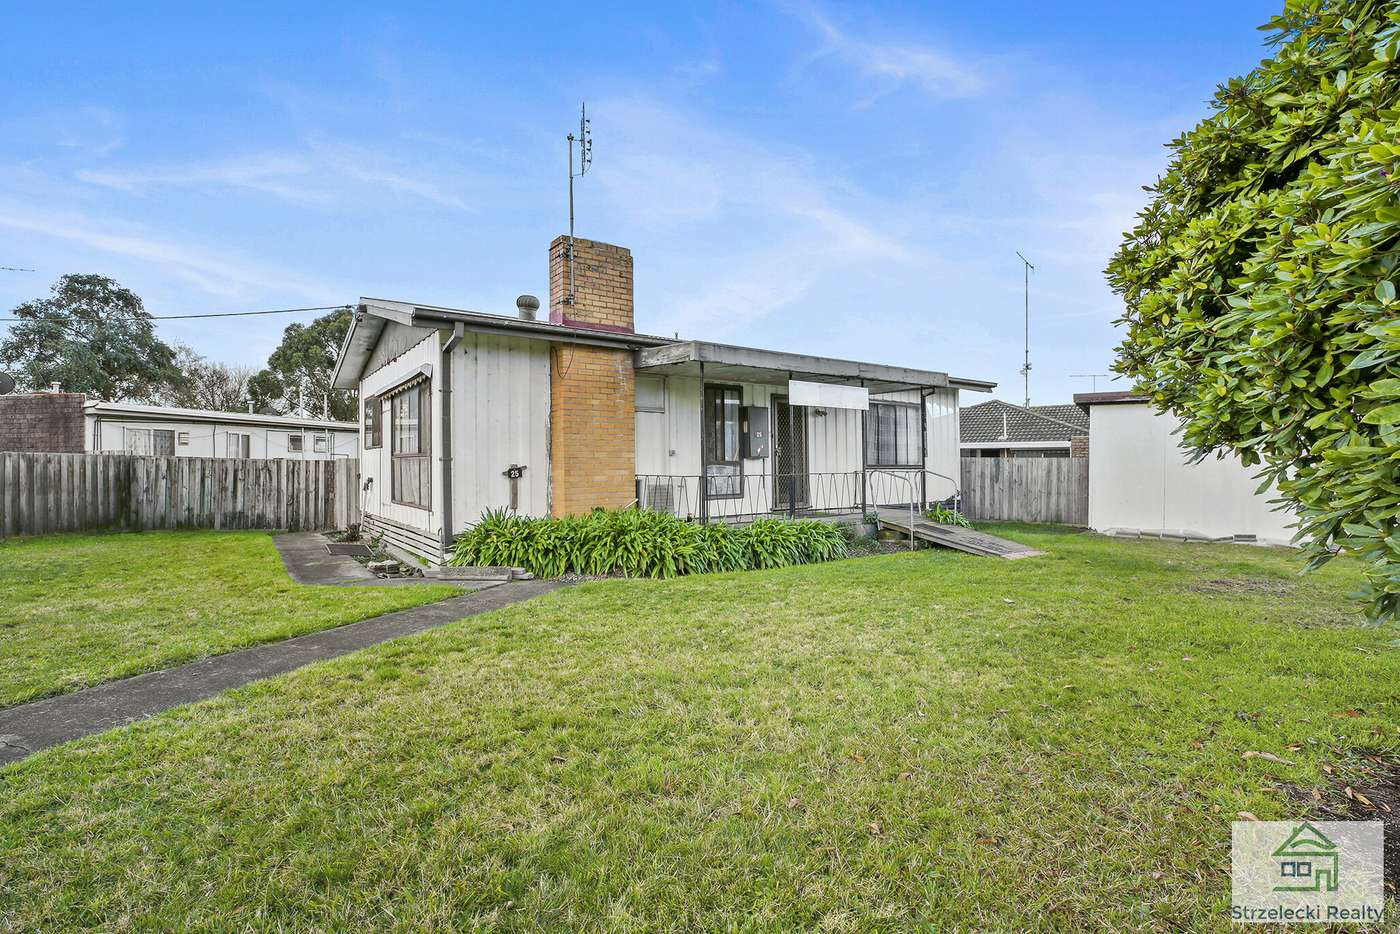 Main view of Homely house listing, 25 Bennett St, Moe VIC 3825